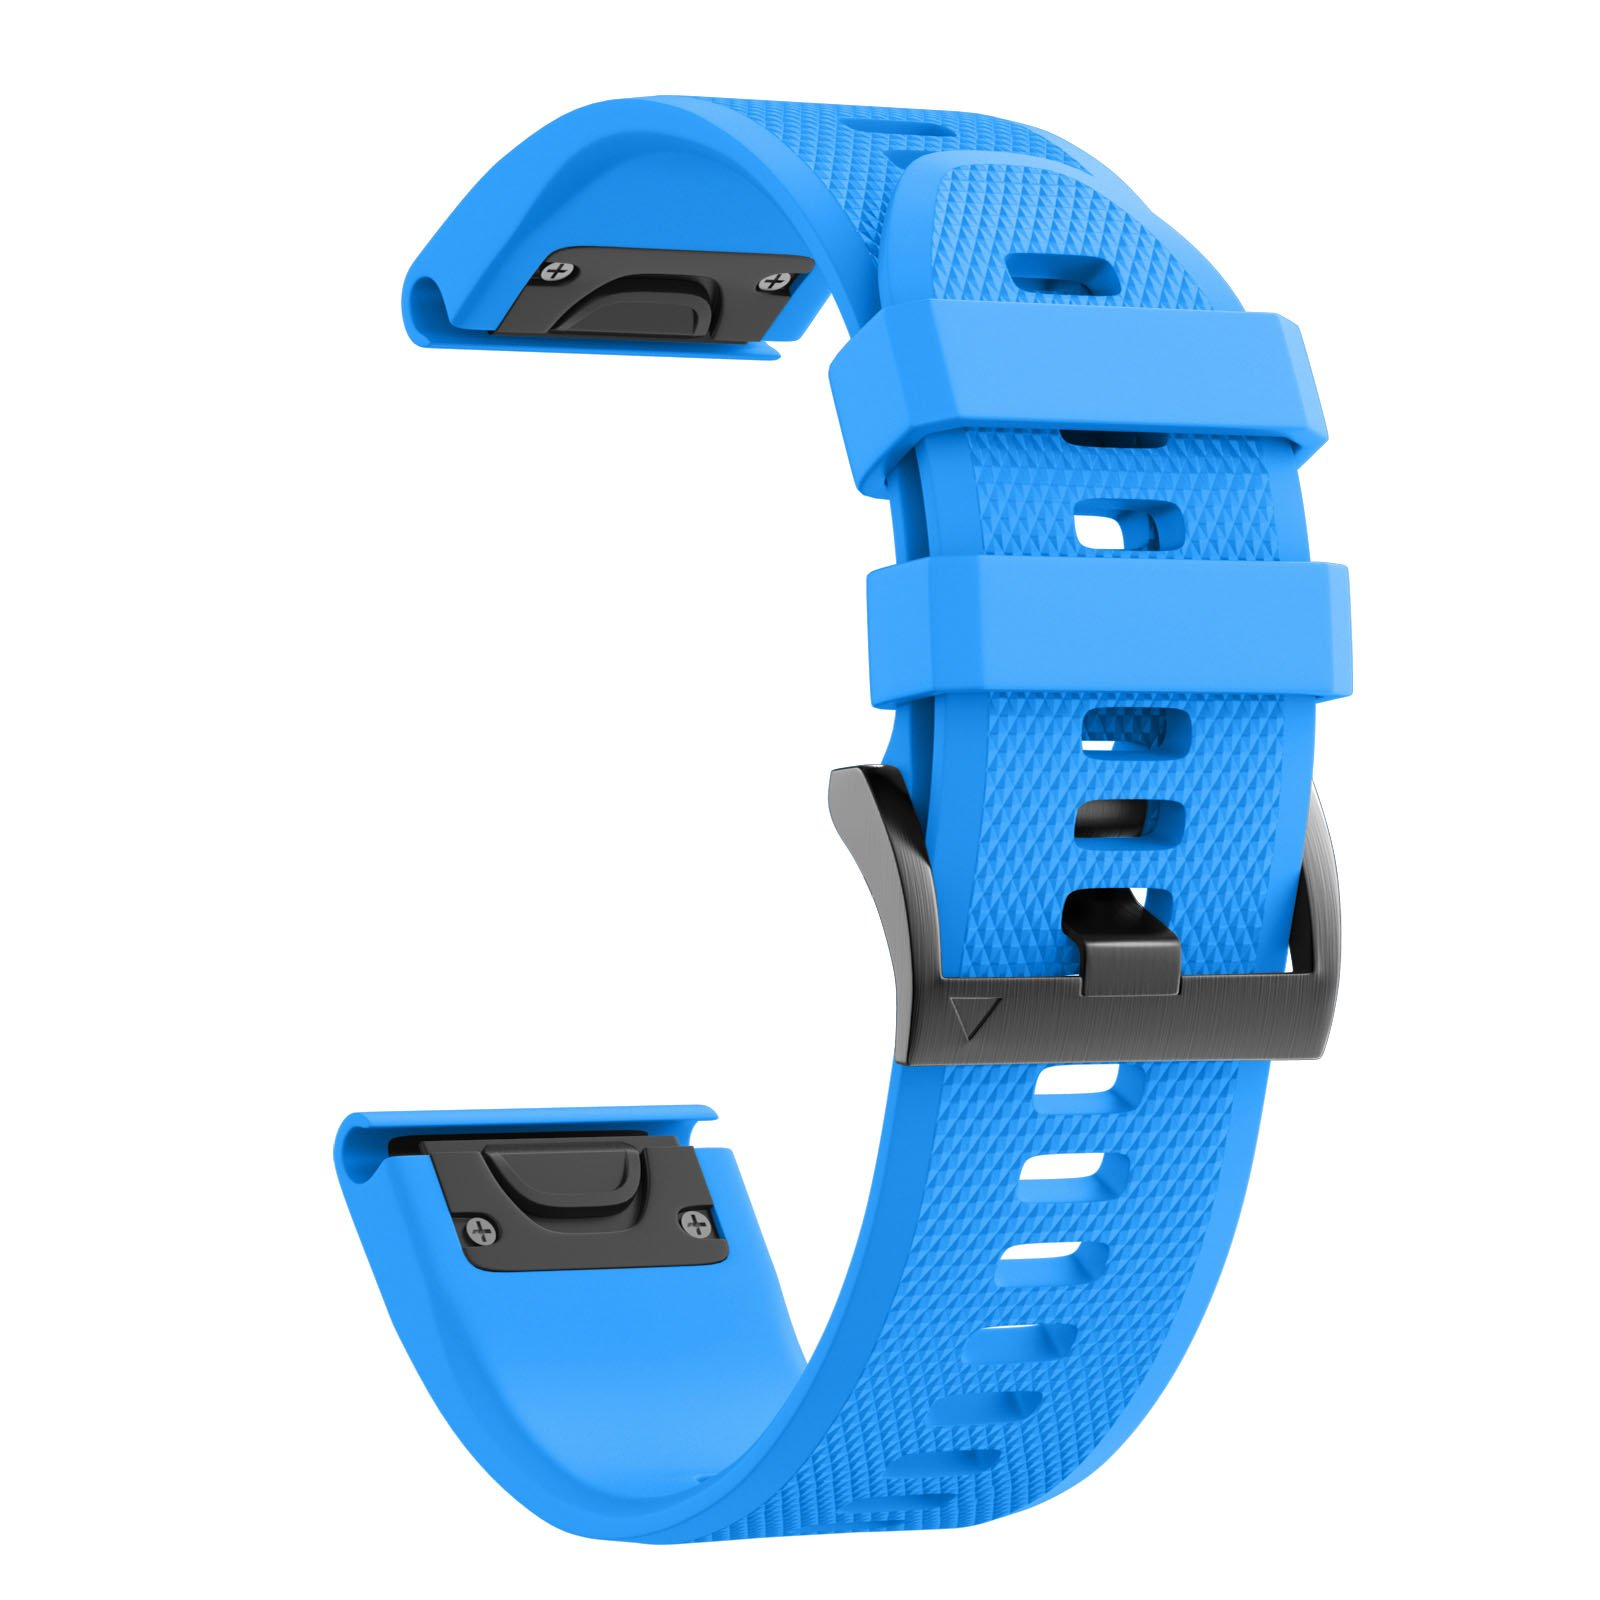 ANCOOL Compatible with Fenix 5 Band Easy Fit 22mm Width Soft Silicone Watch Strap Replacement for Garmin Fenix 5/Fenix 5 Plus/Forerunner 935/Approach S60/Quatix 5 - Blue by ANCOOL